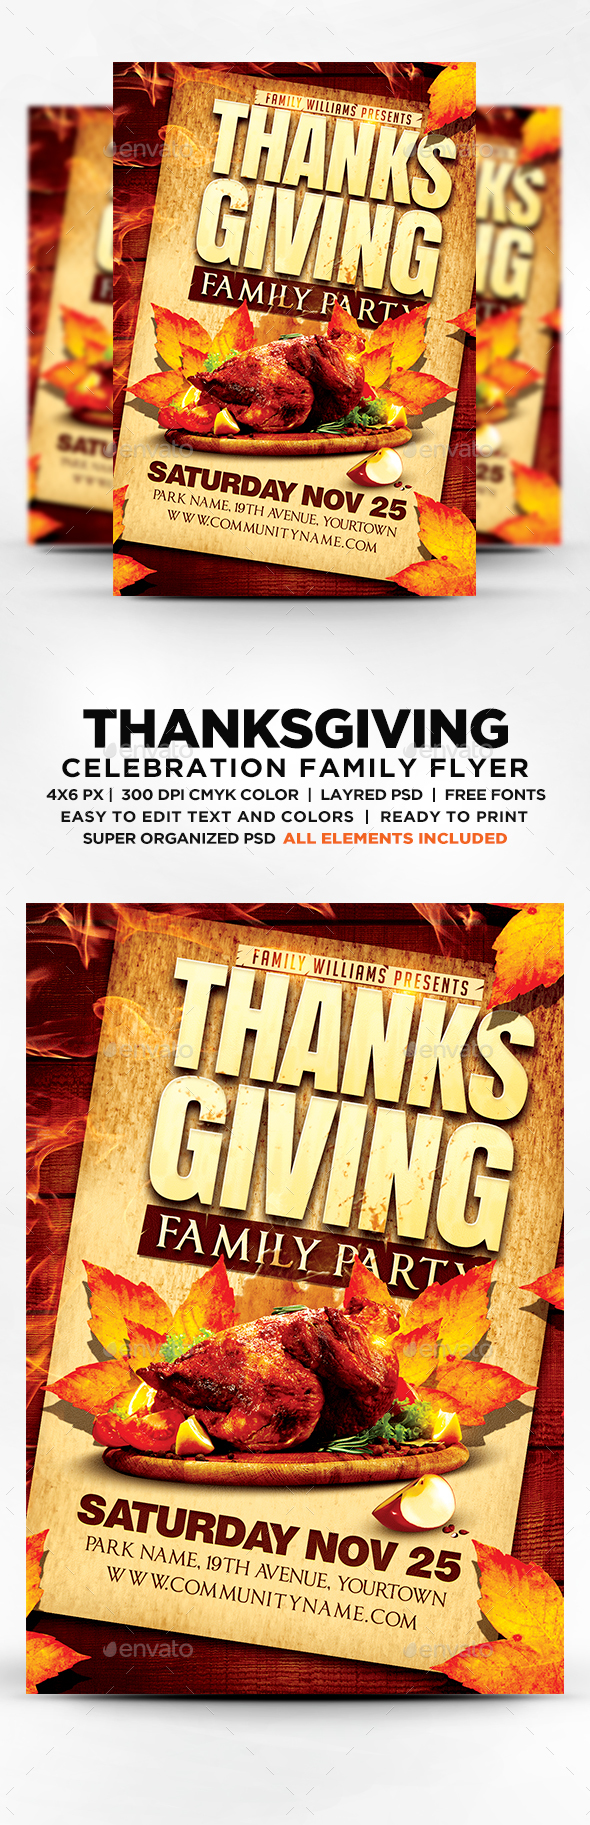 Thanksgiving Family Party Flyer